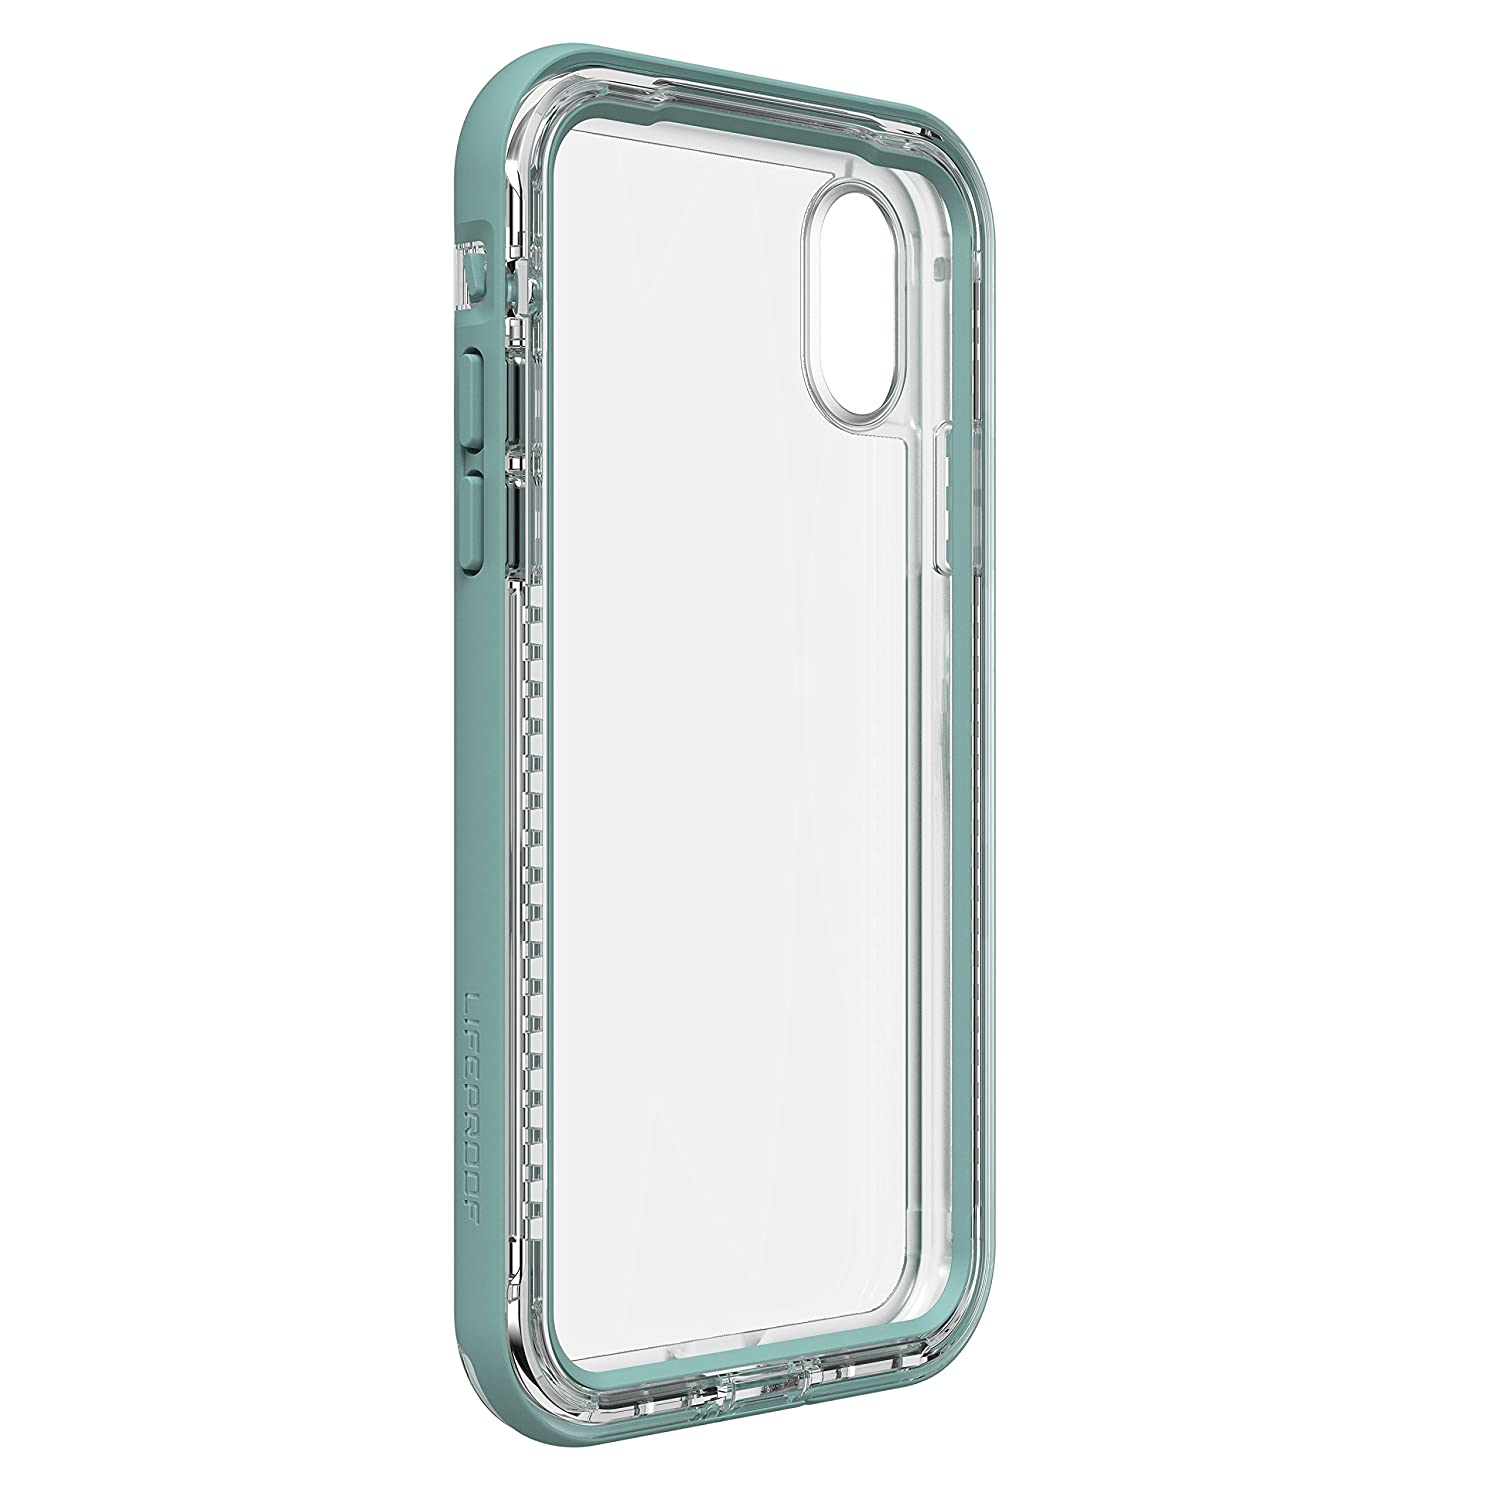 super popular a11c3 eb4ff Lifeproof NEXT SERIES Case for iPhone X (ONLY) - Seaside / Transparent